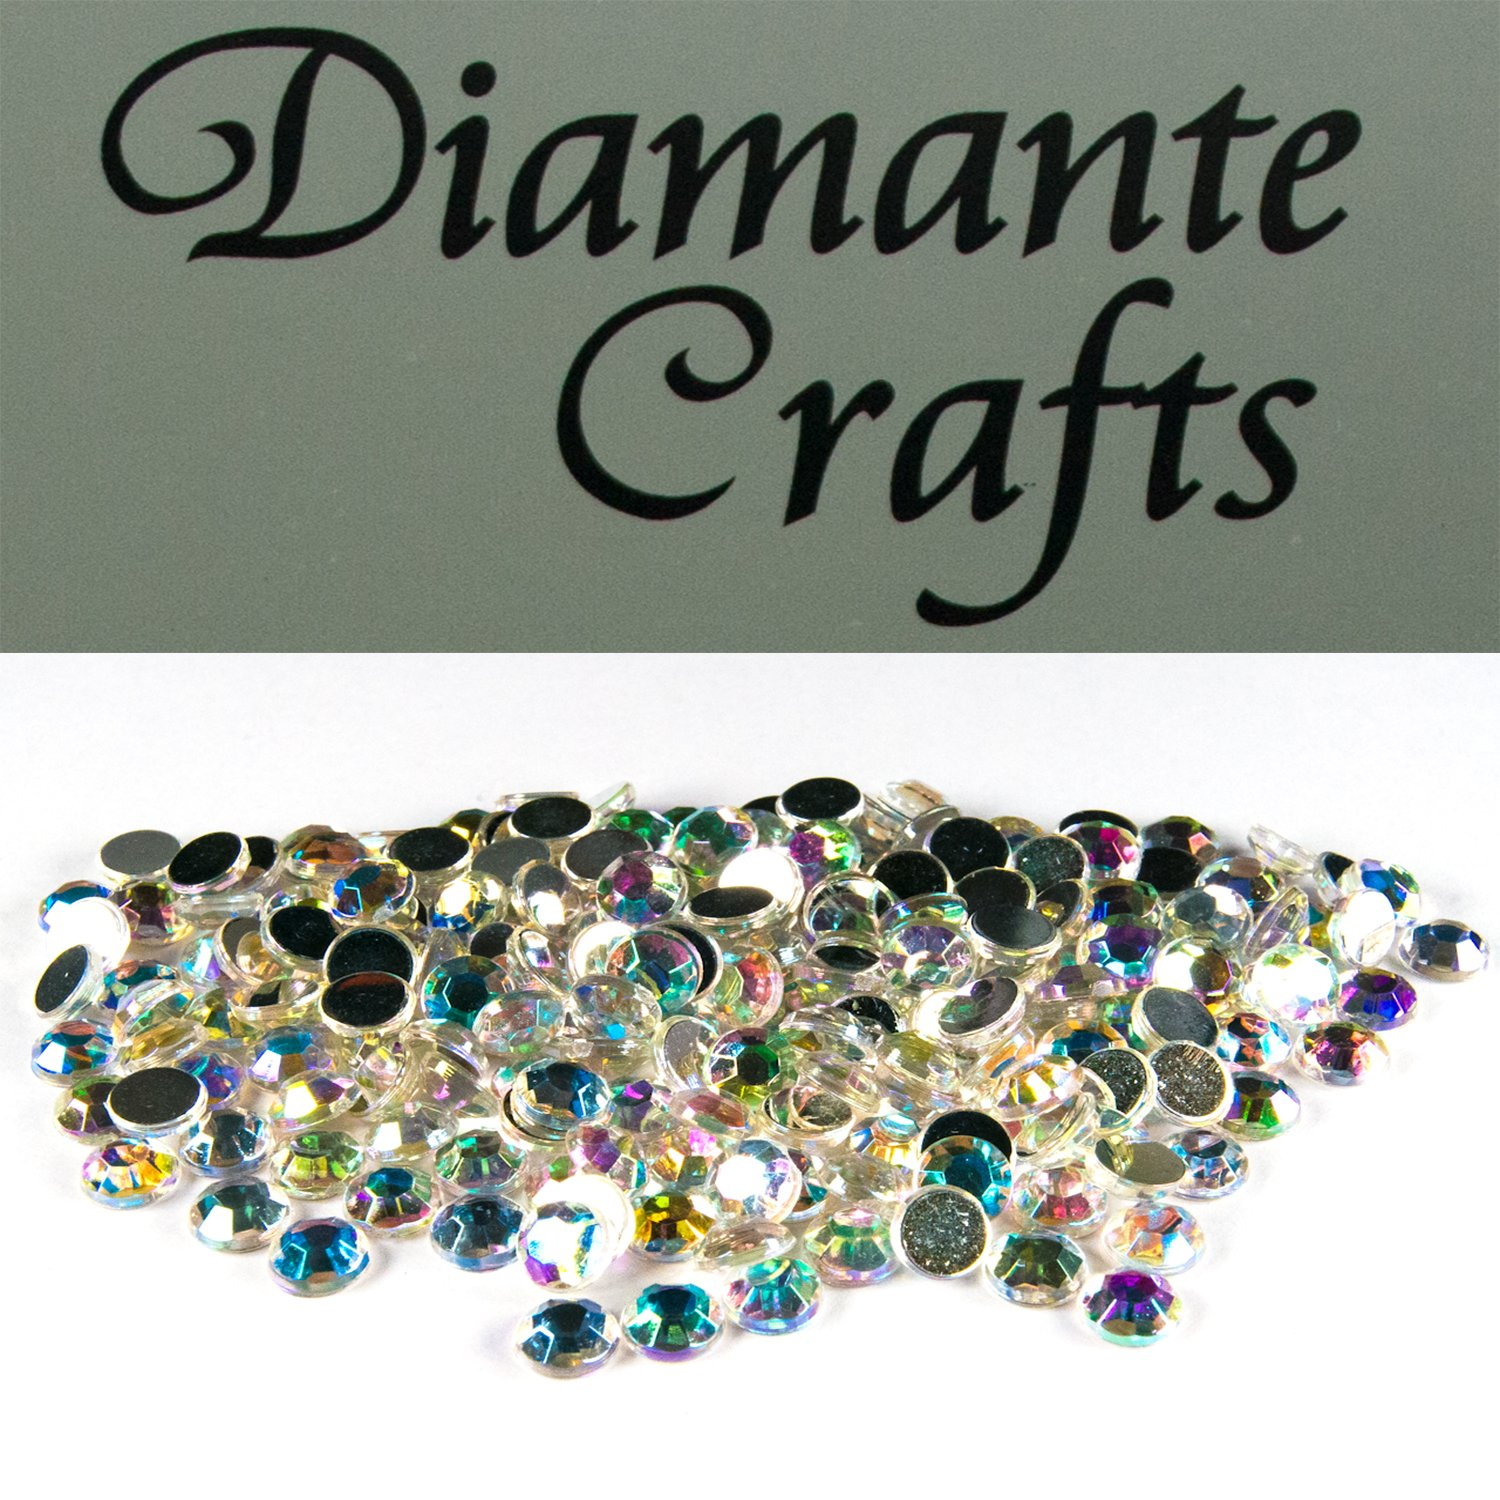 200 x 5mm Clear Iridescent Round Diamante Loose Rhinestone Gems created exclusively for Diamante Crafts